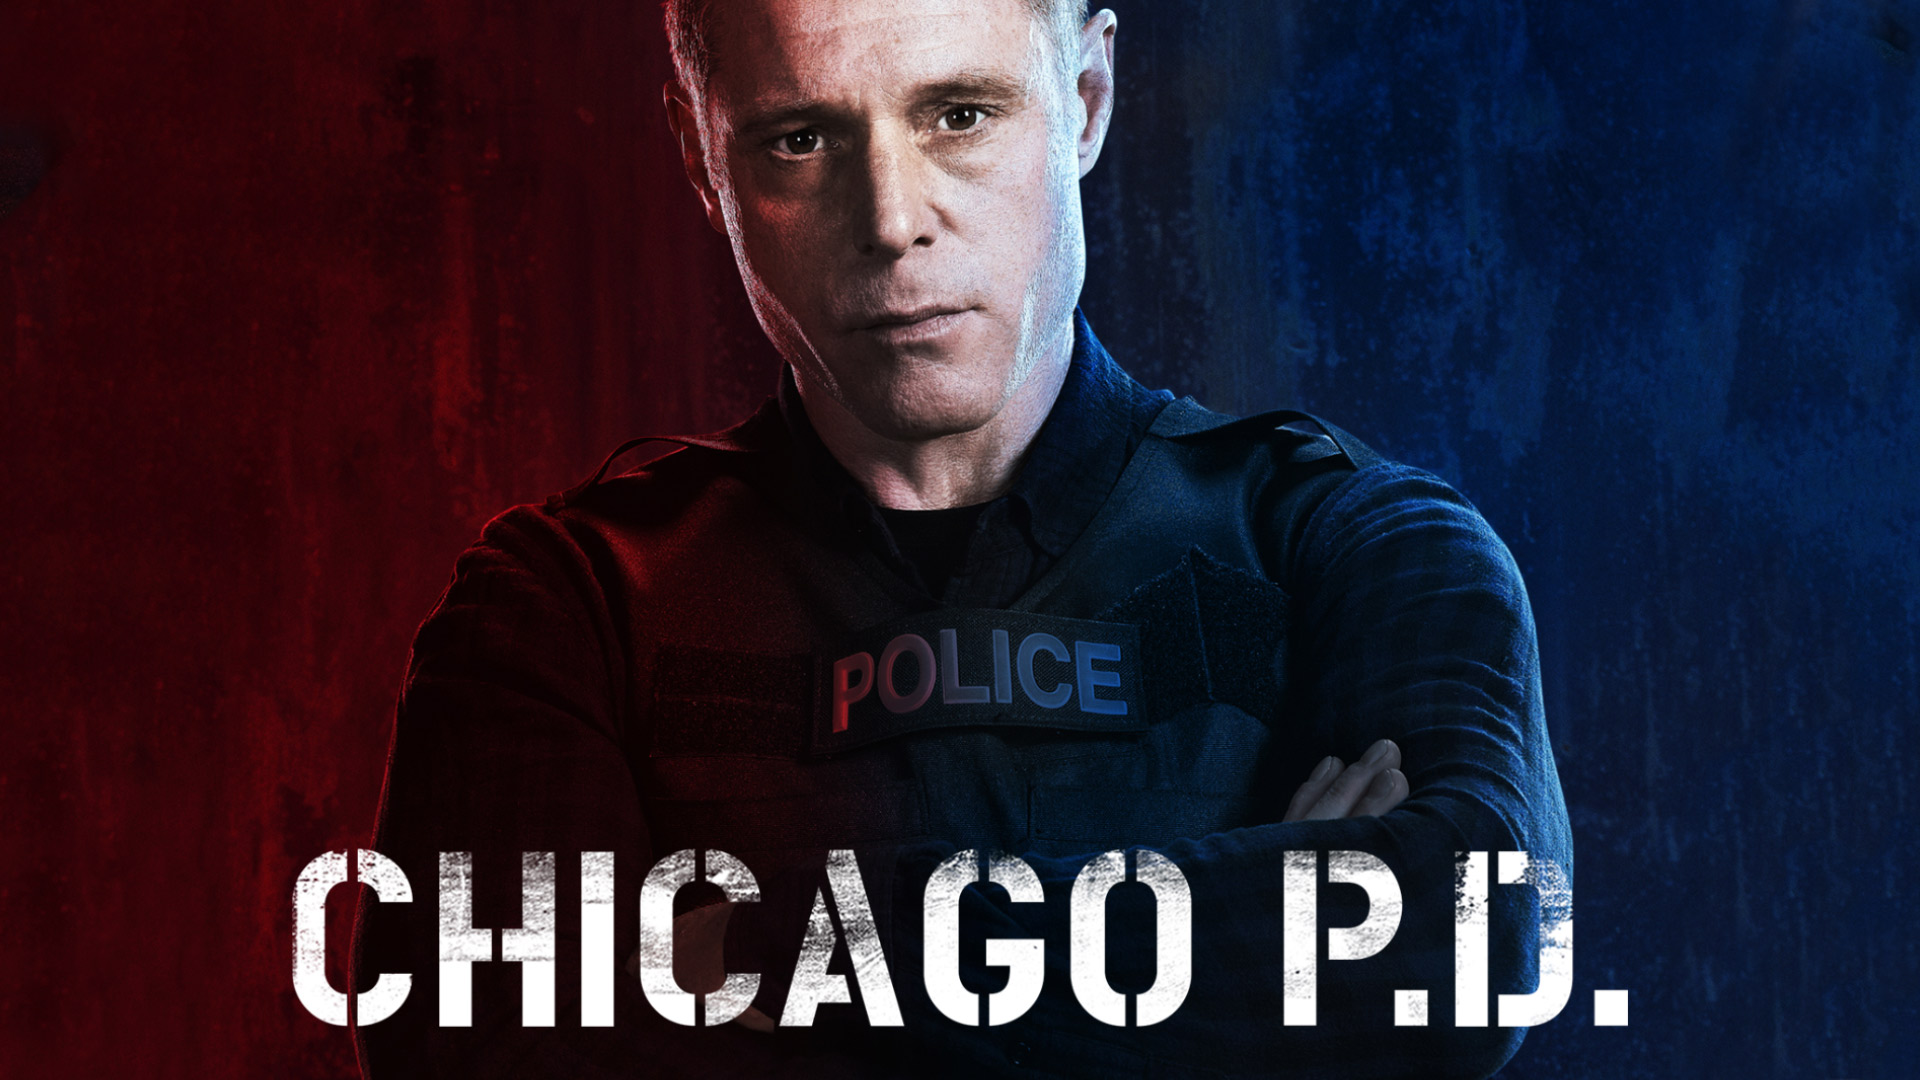 Chicago P.D., Season 1